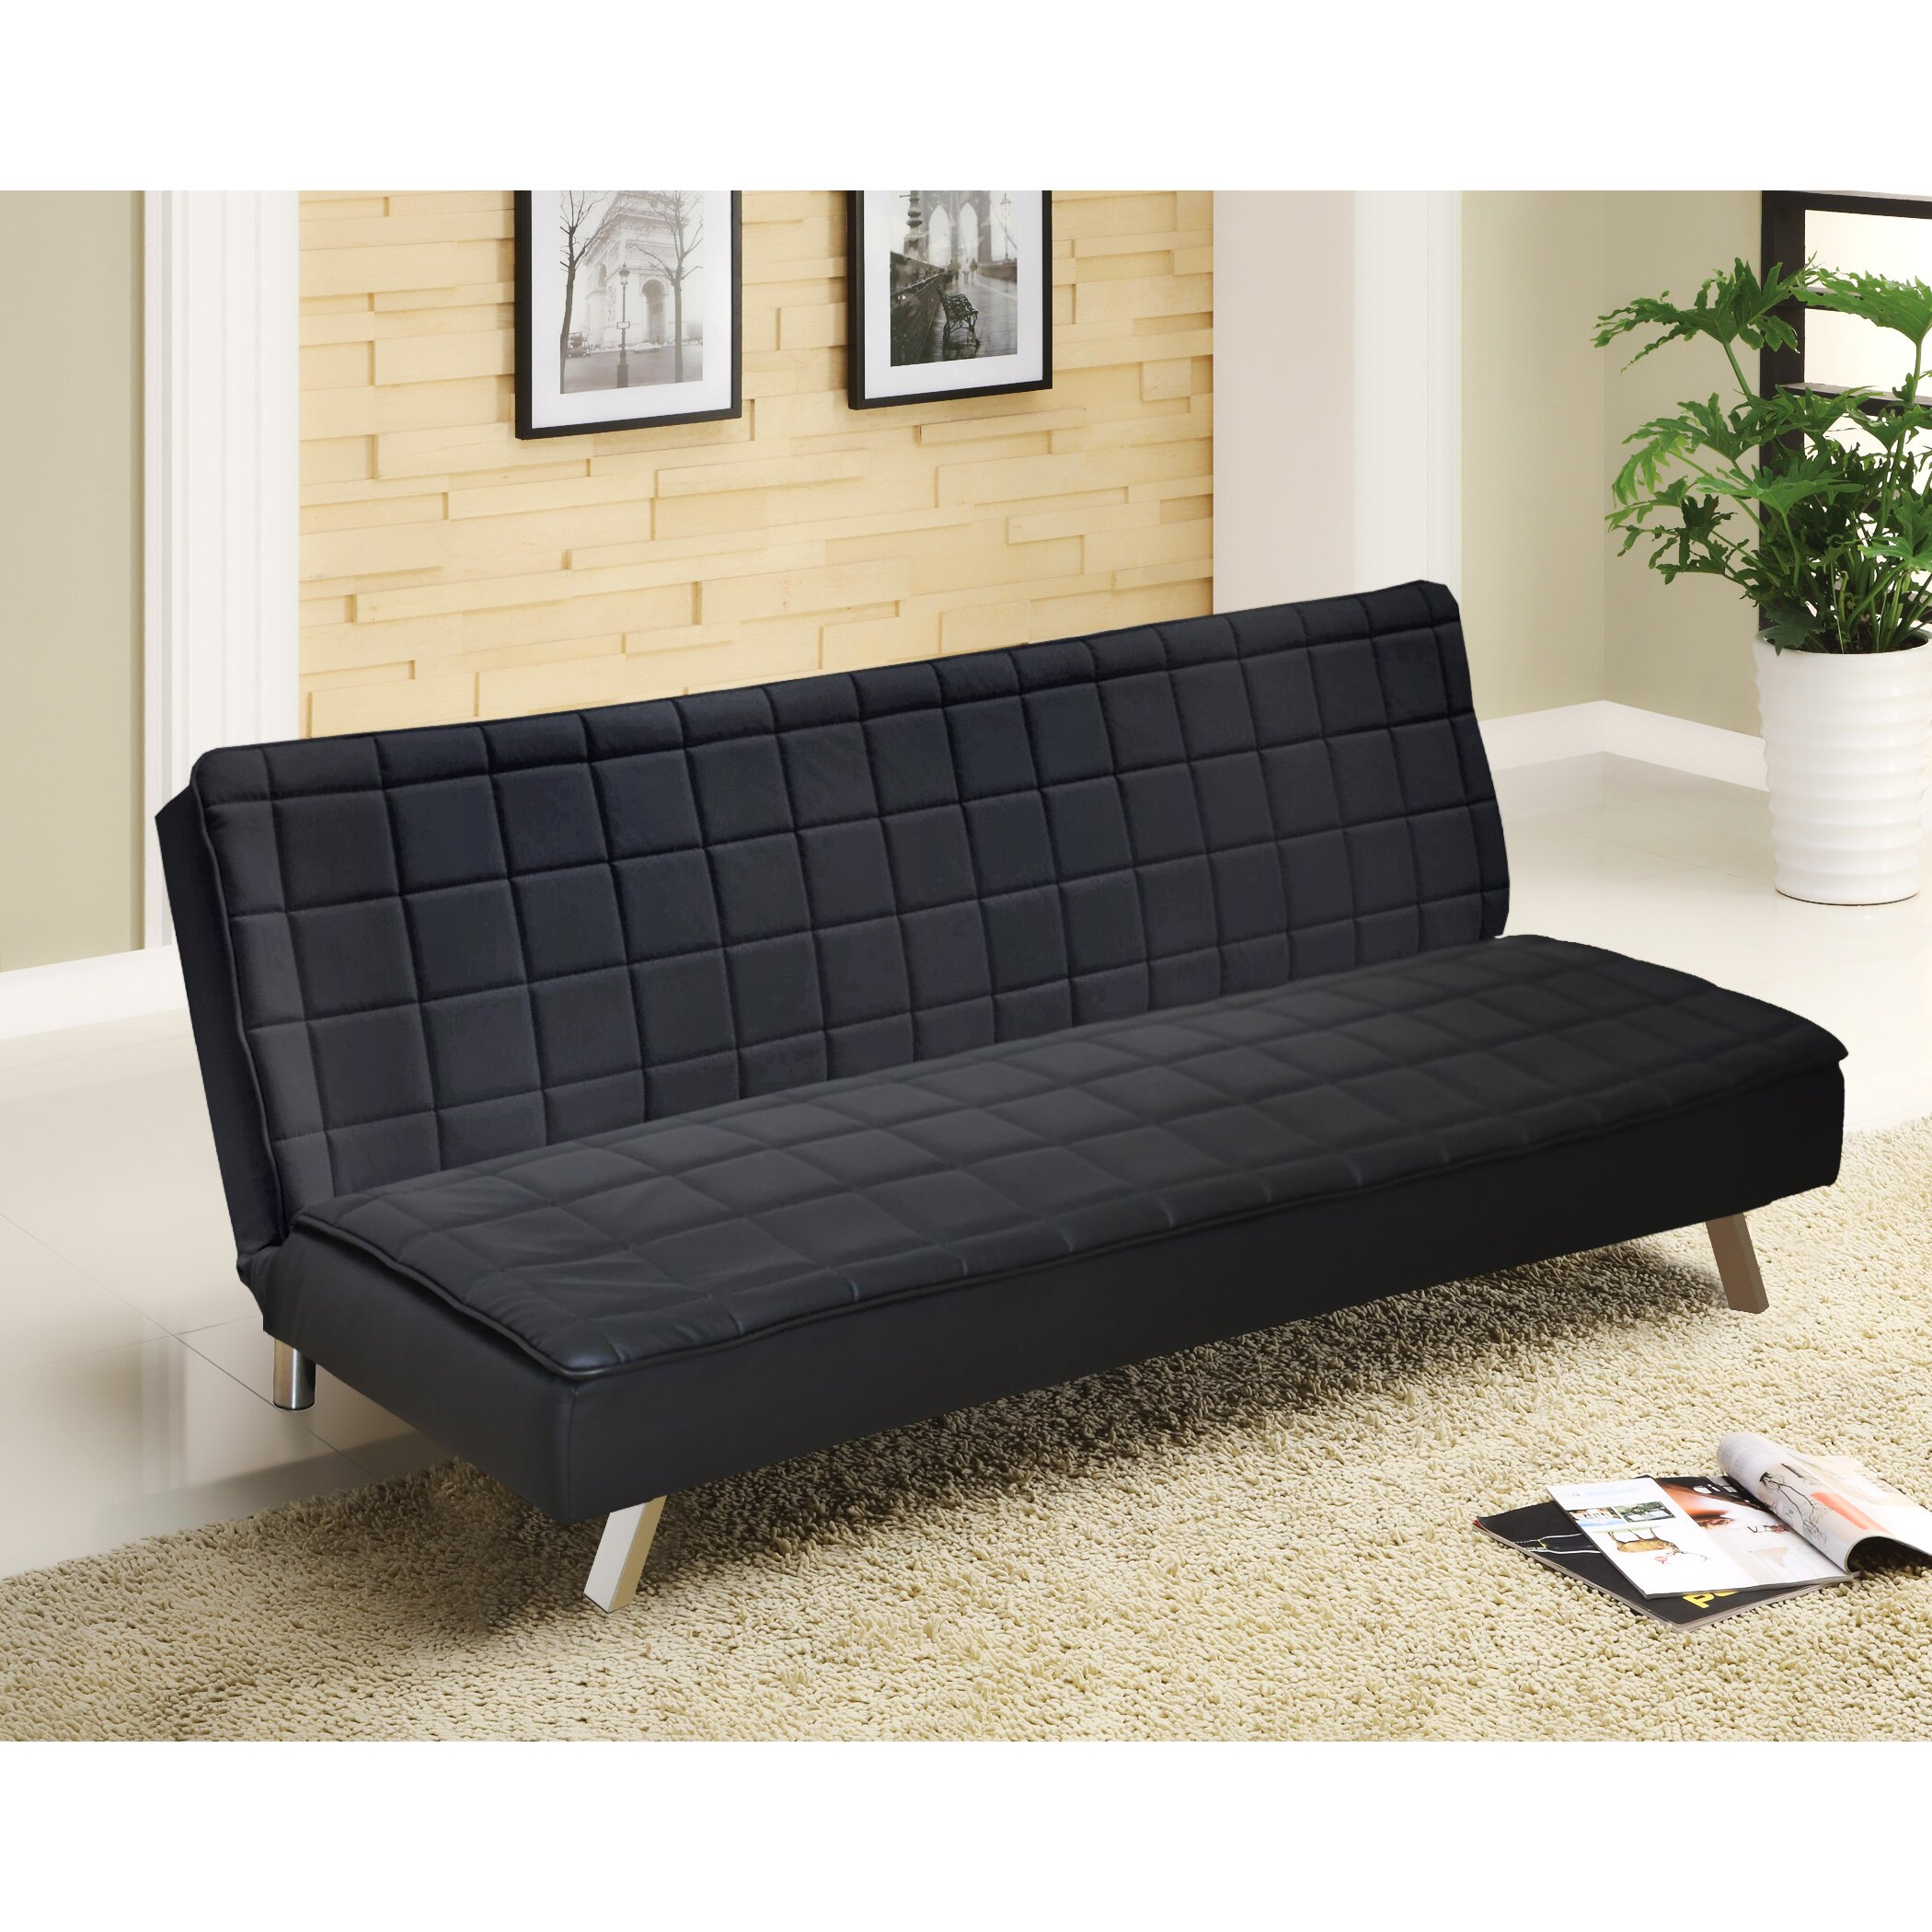 Urban shop memory foam convertible sofa reviews allmodern for Foam convertible sofa bed